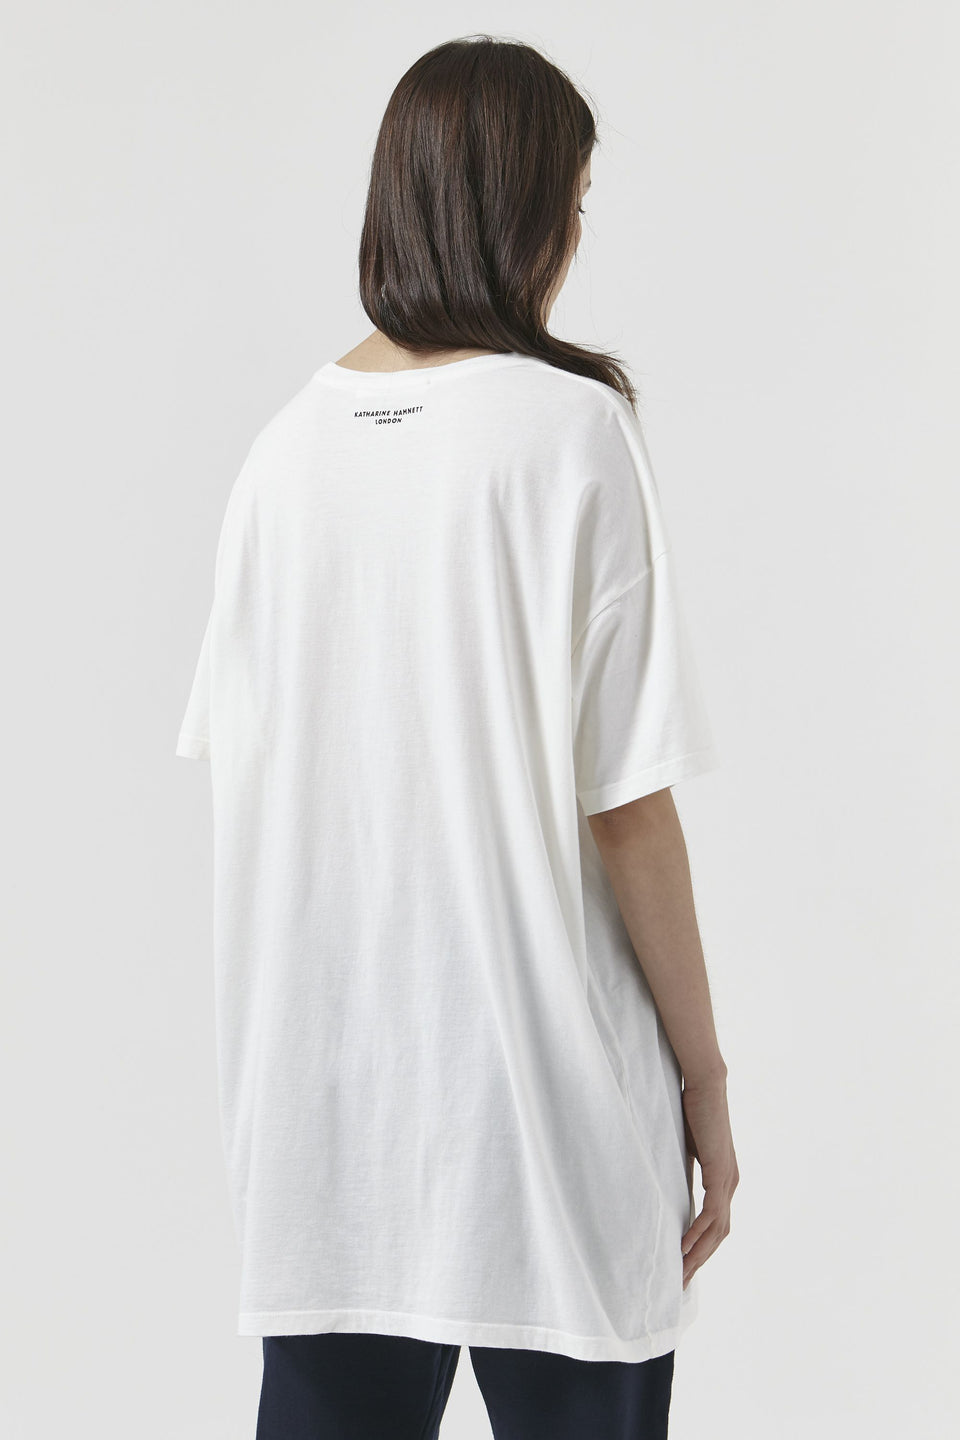 ALE Milk White T-Shirt Luxury T-Shirt Katharine Hamnett London - der ZEITGEIST